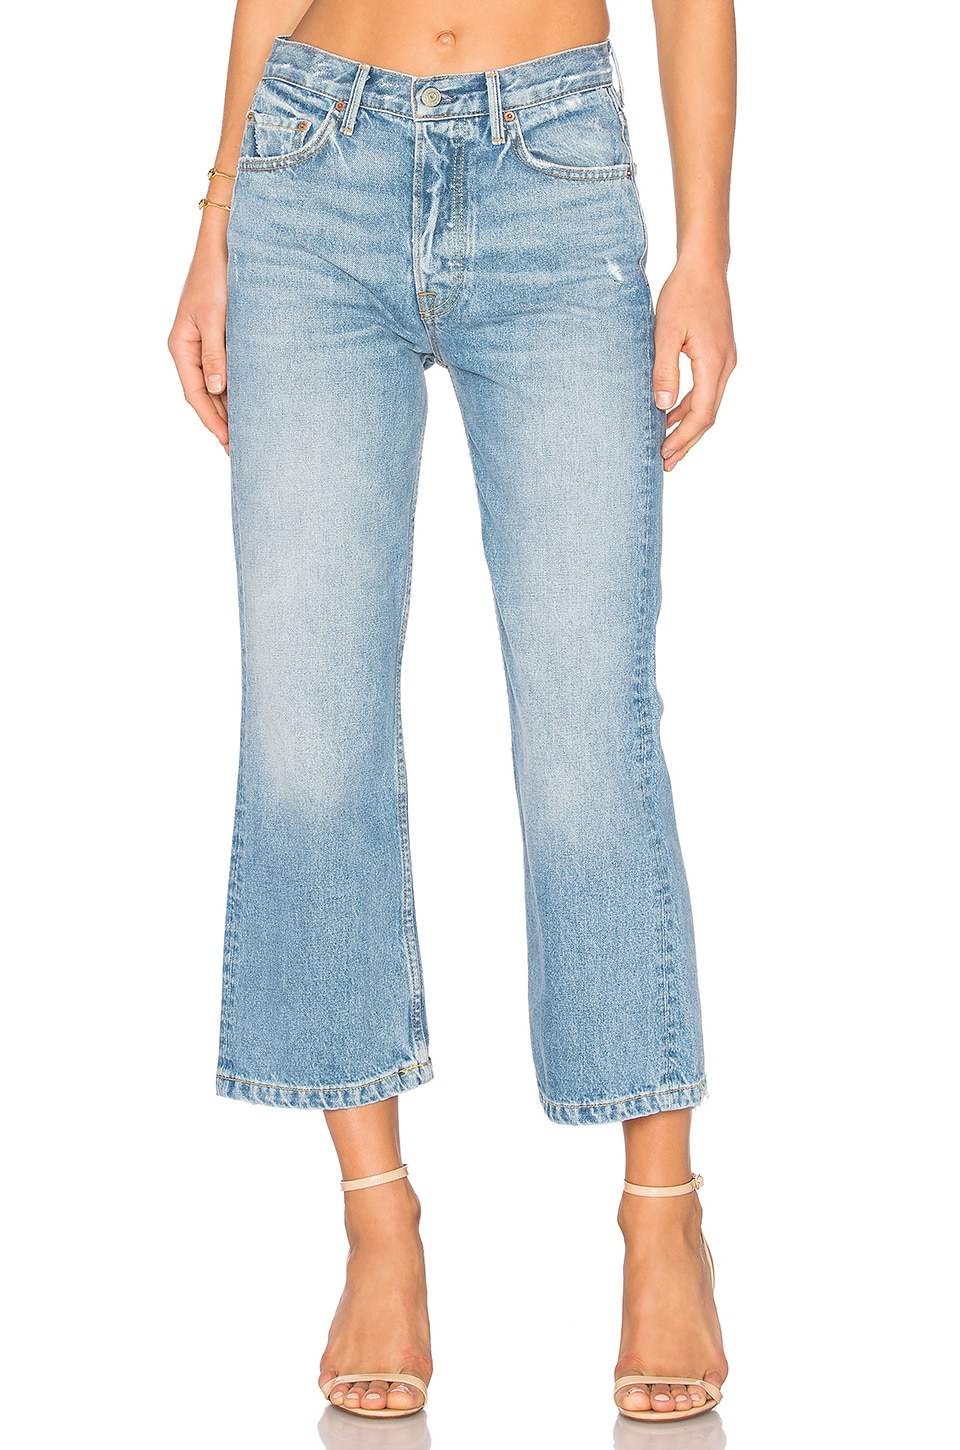 GRLFRND Linda High-Rise Pop Crop Jean in American Woman